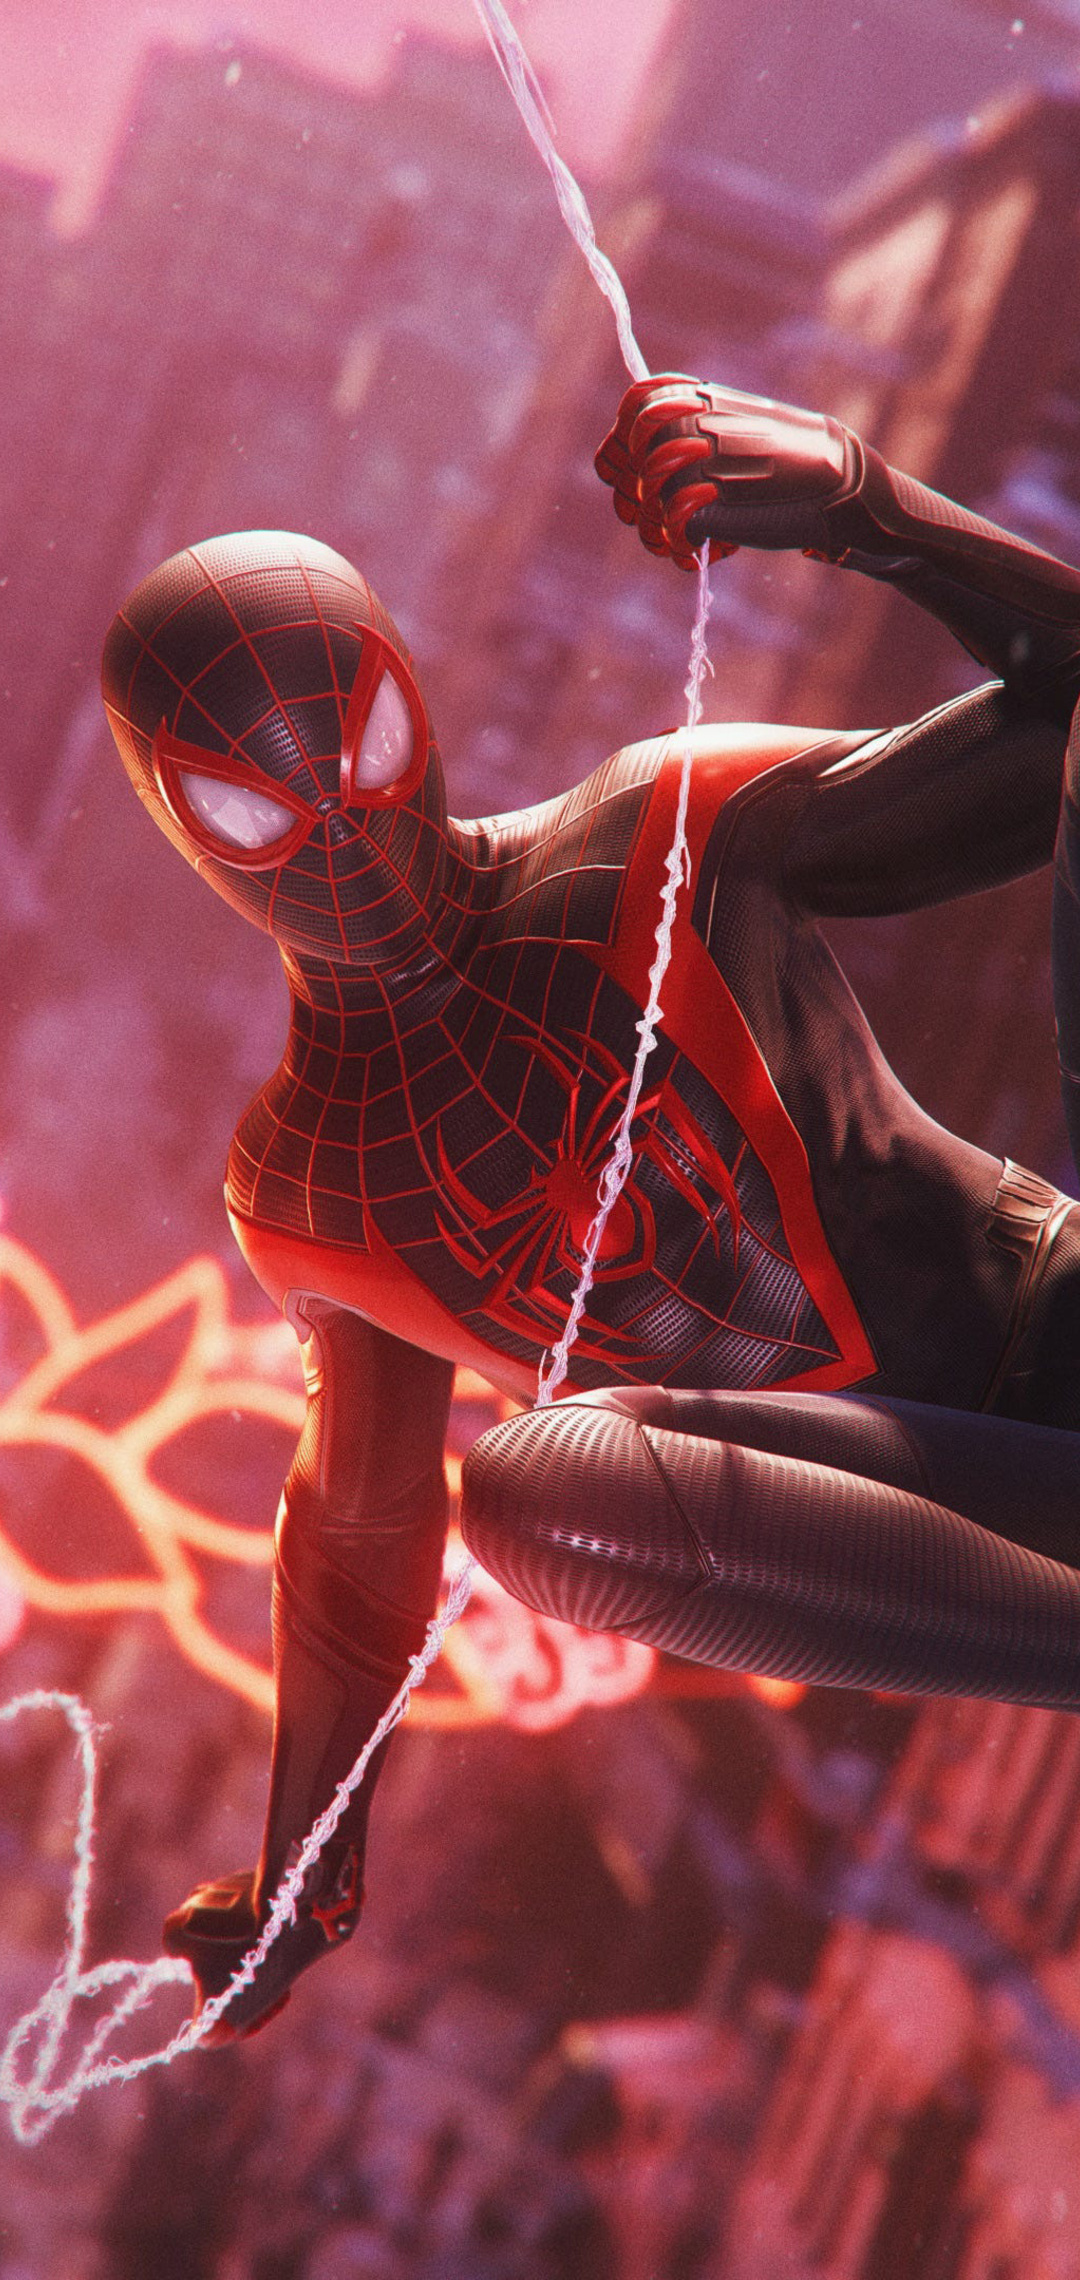 Spiderman Iphone 11 Pro Max Wallpaper Marvel Spider Man Miles Morales 1080x2280 Download Hd Wallpaper Wallpapertip